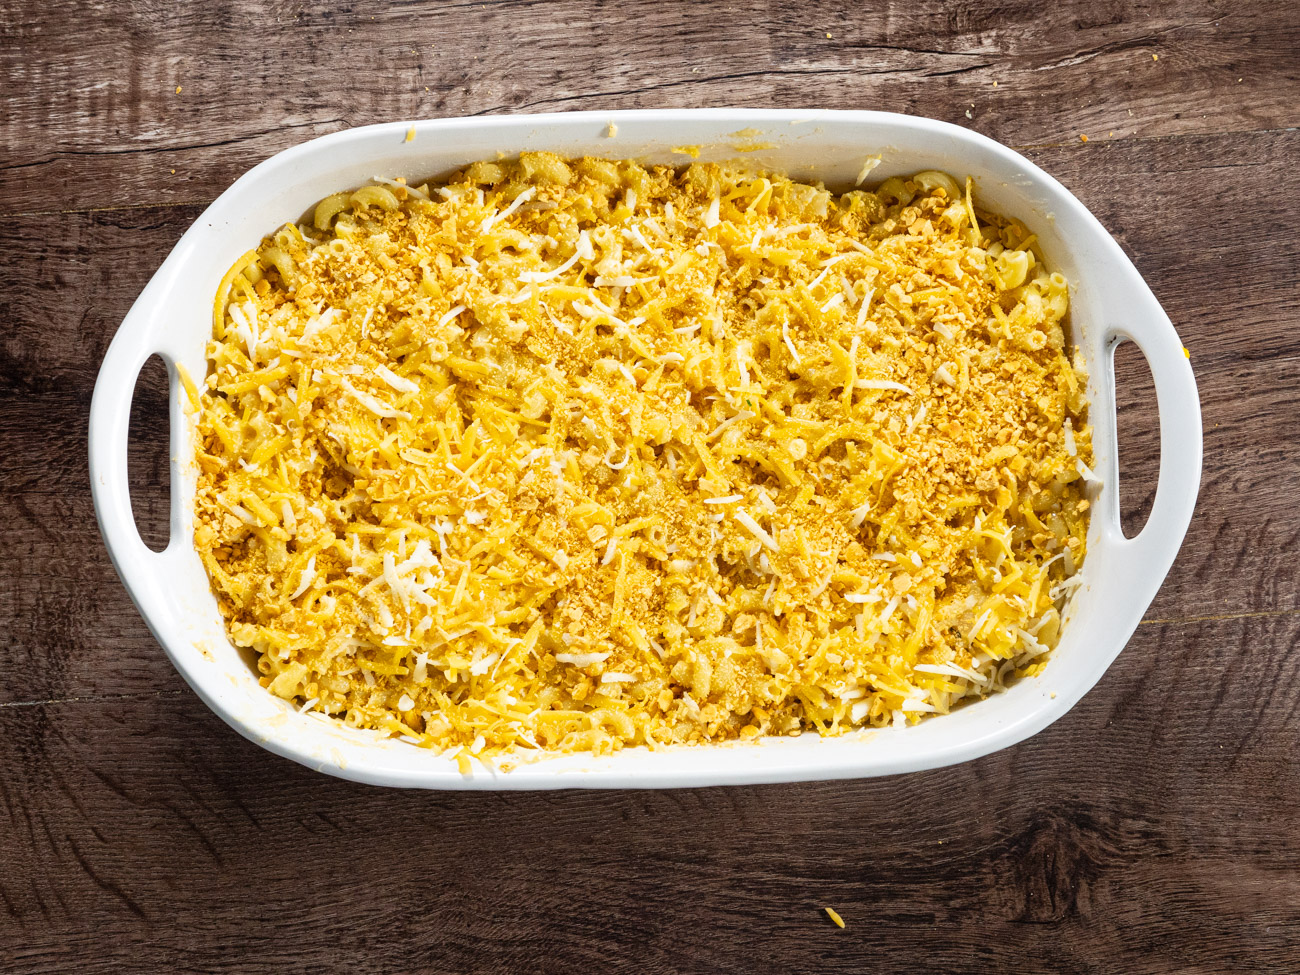 Pour macaroni into a deep 9x13 casserole dish or baking pan. Cover with sauce and stir to coat. Top with crushed crackers and the reserved cheeses.